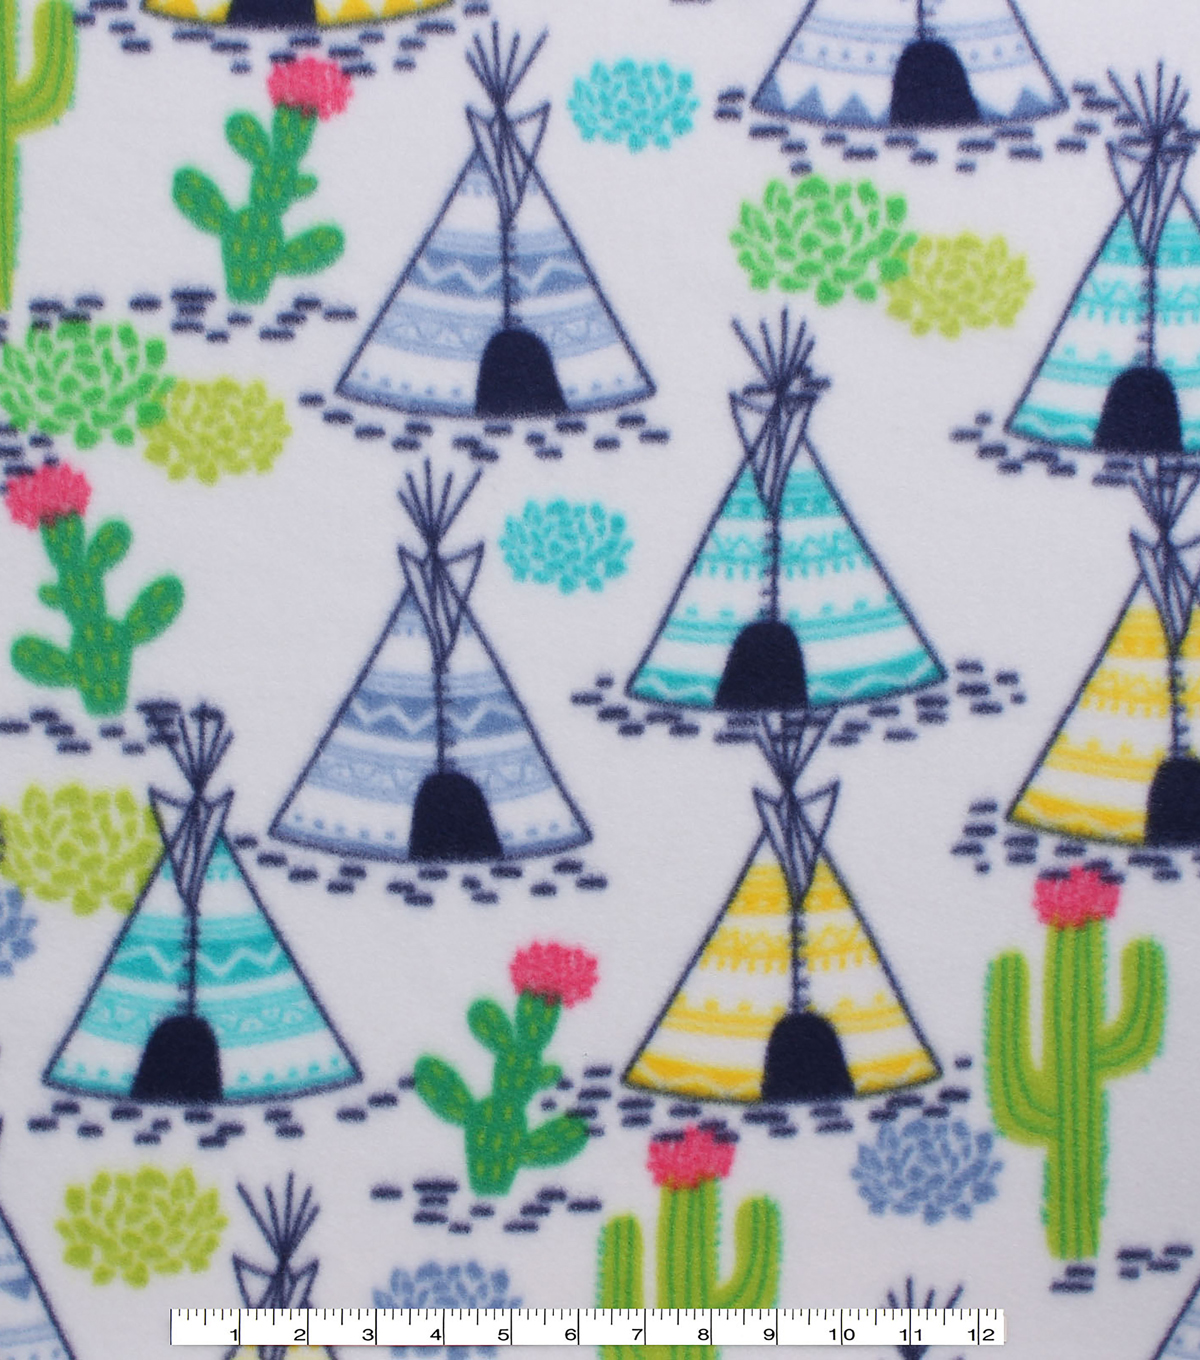 Blizzard Fleece Fabric -Teepee & Cactus